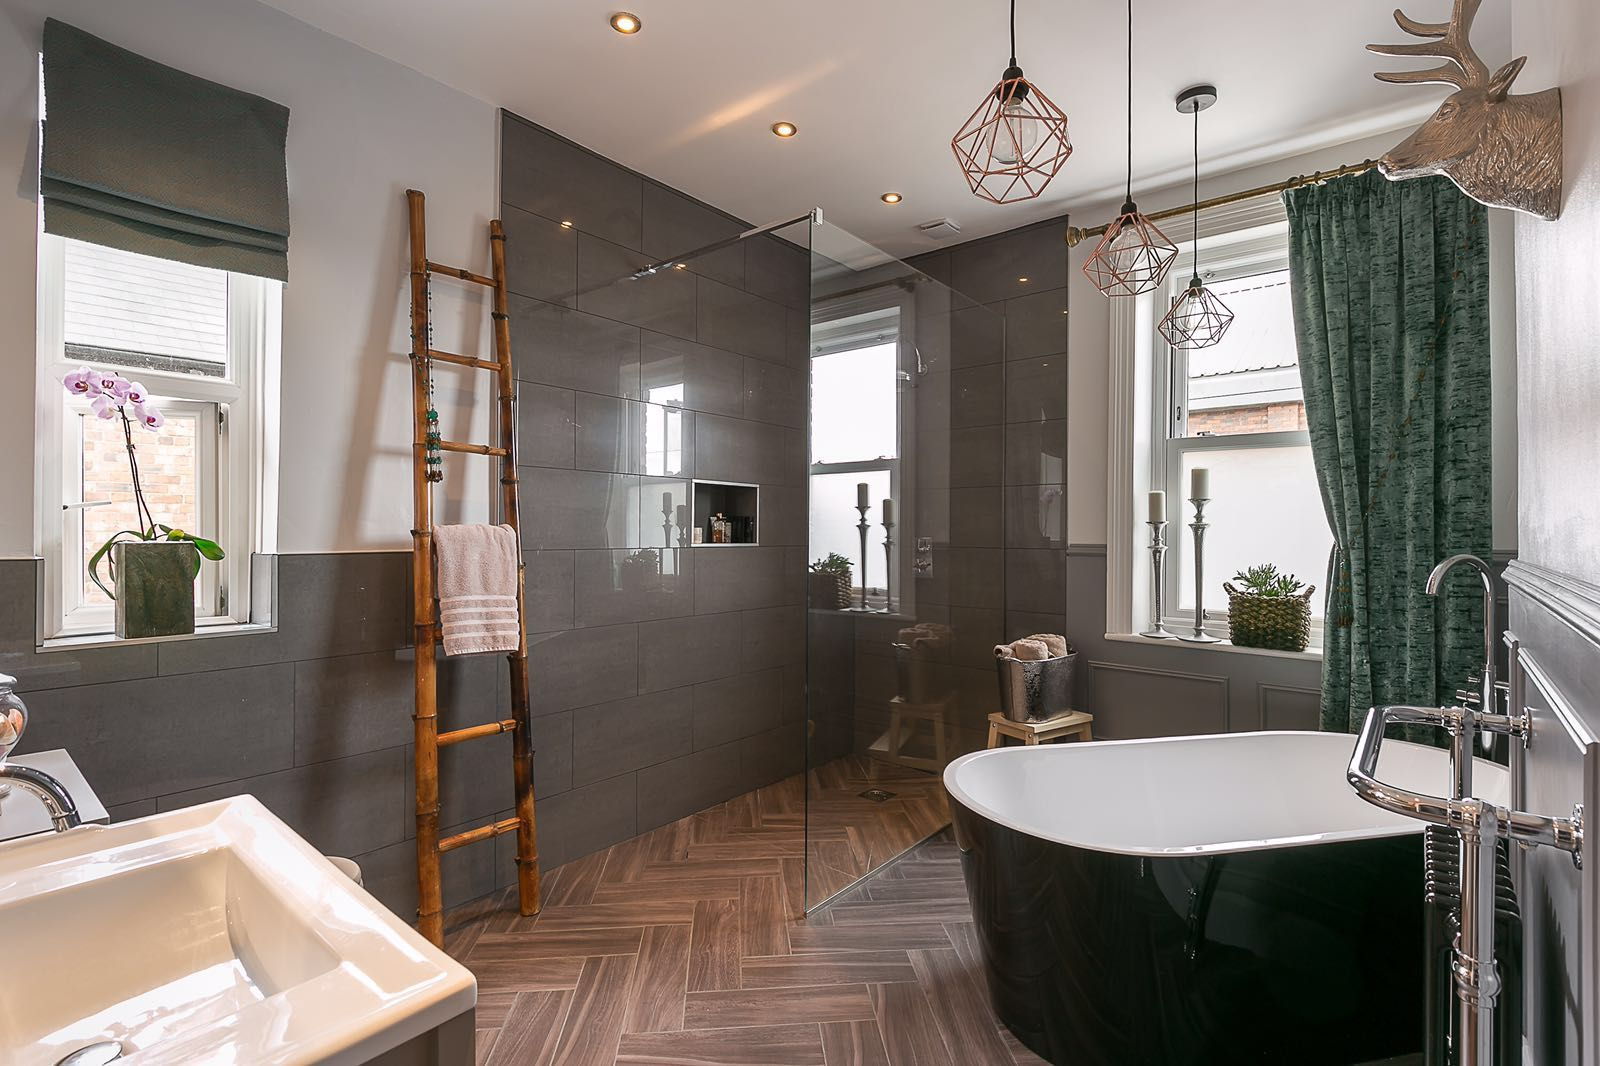 Grey Bathroom with Wet Room and freestanding Bathtub ... on Wet Room With Freestanding Tub  id=61128